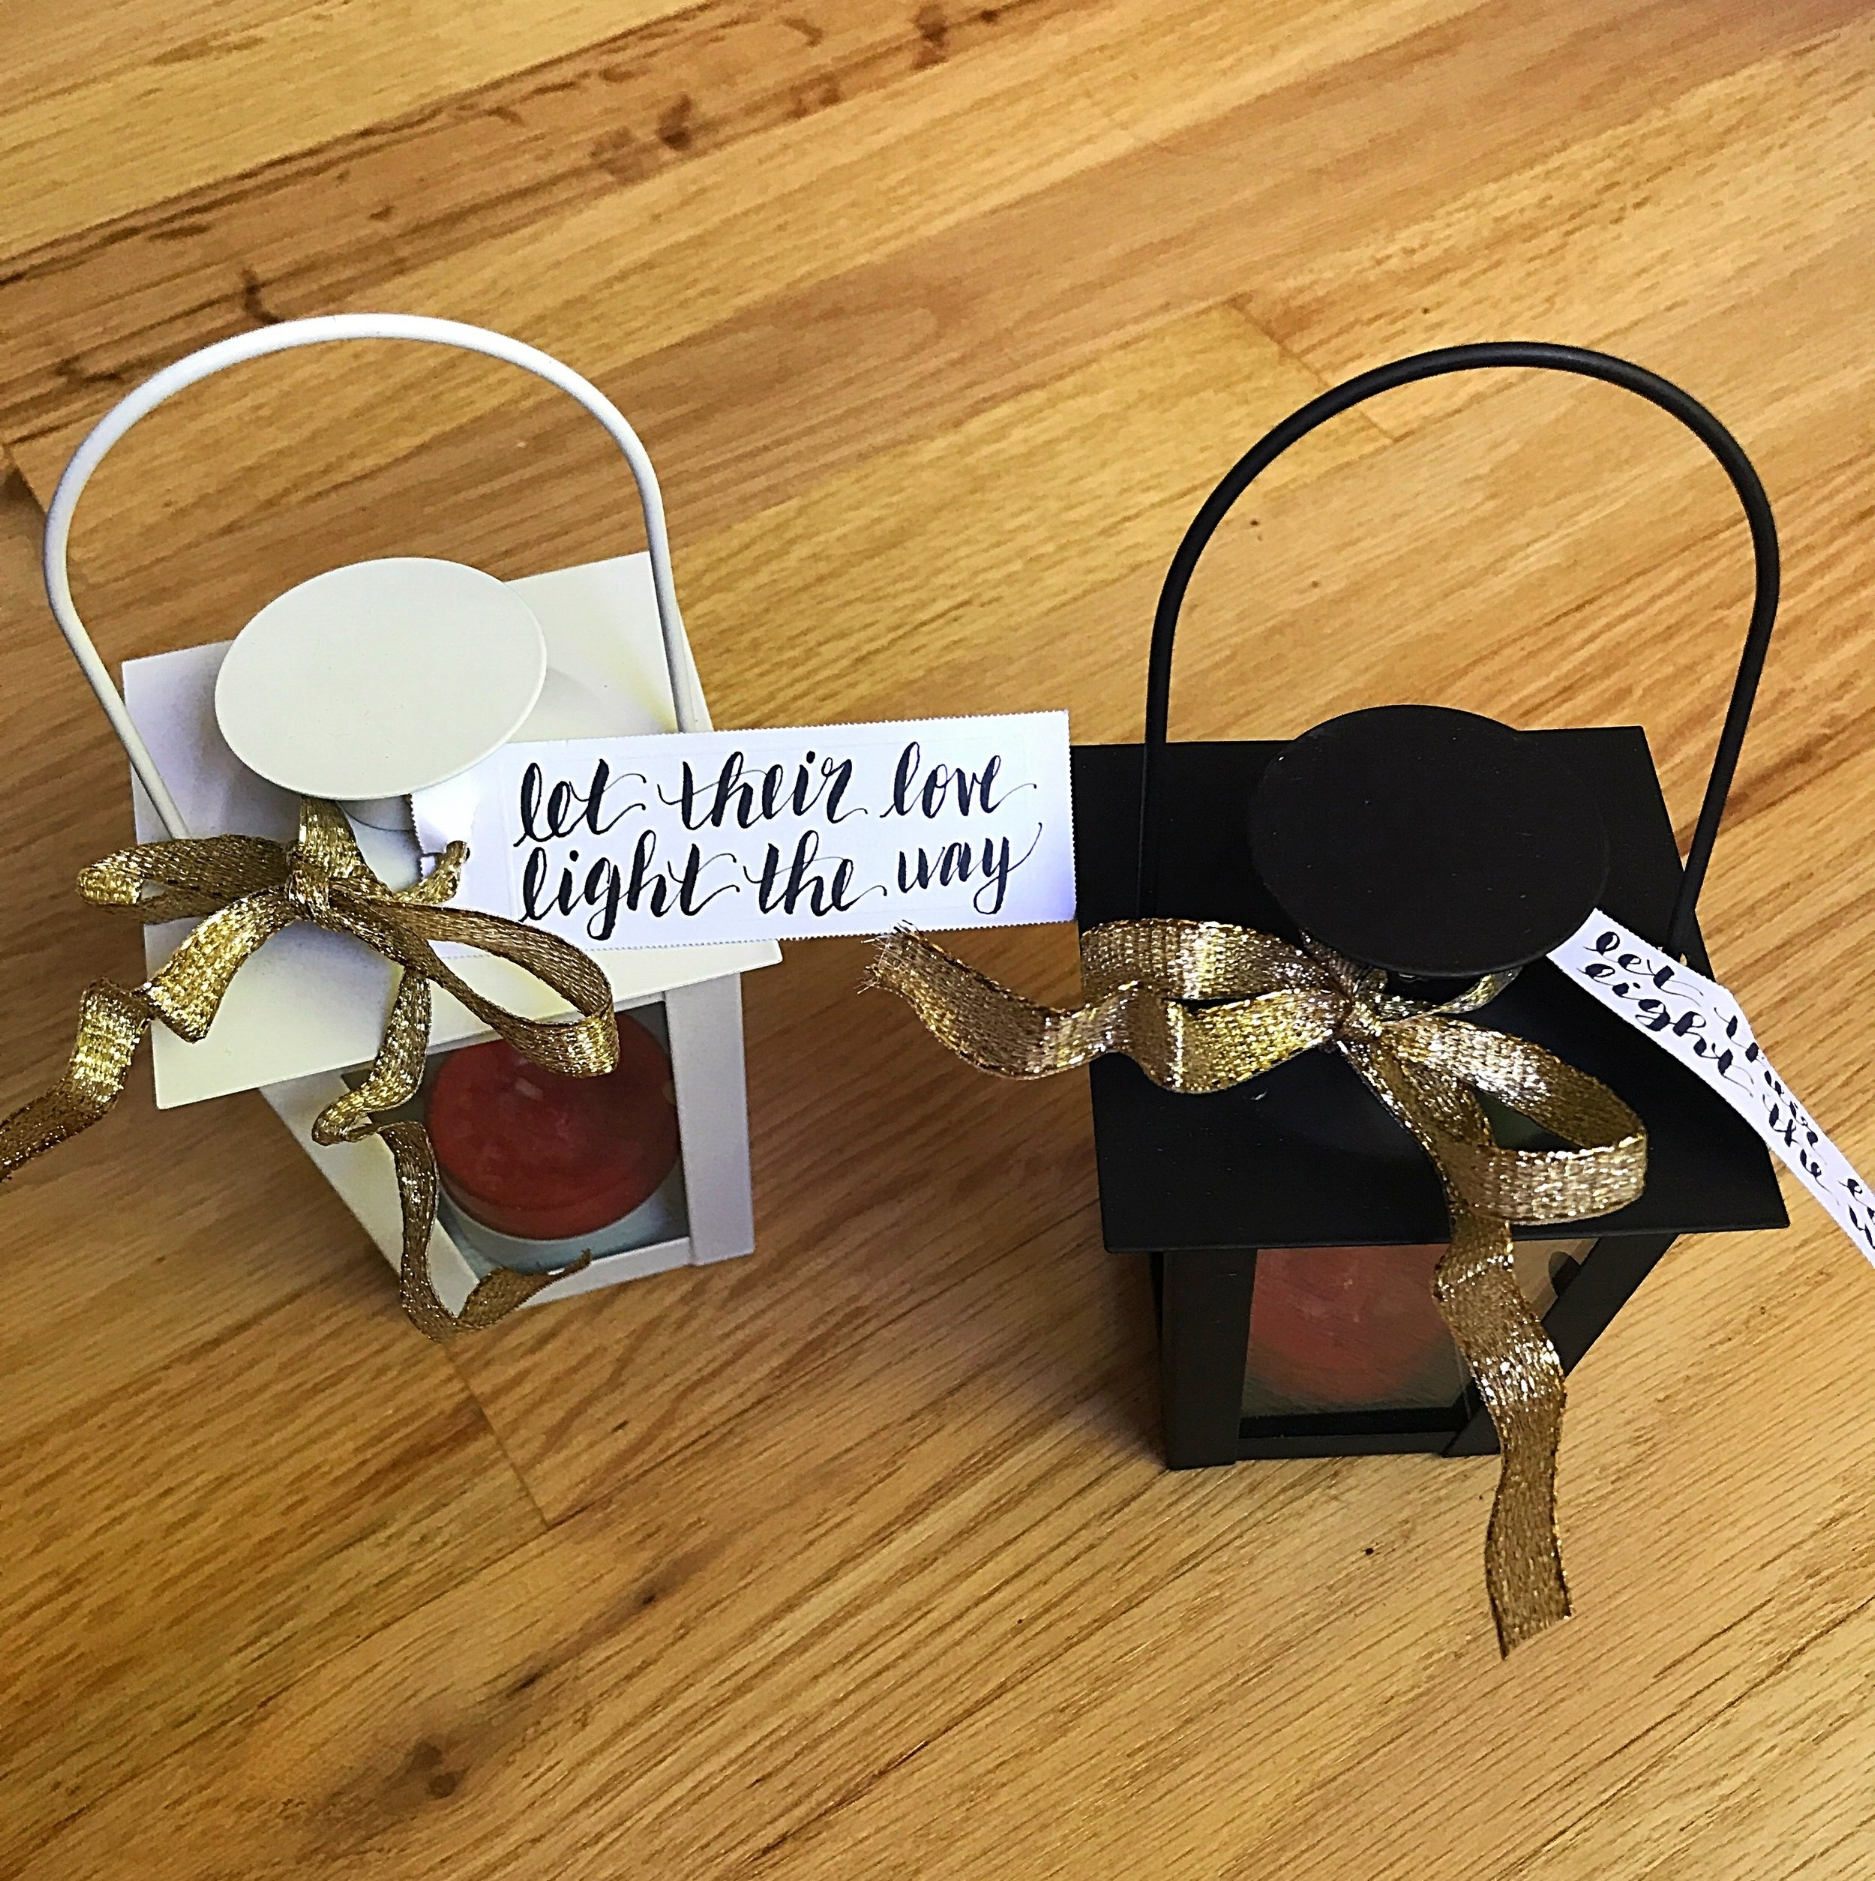 My best friend and bridesmaid, Liza, couldn't attend the shower, but she contributed in the sweetest way. She hand-lettered the tags for the favors and they were perfect!